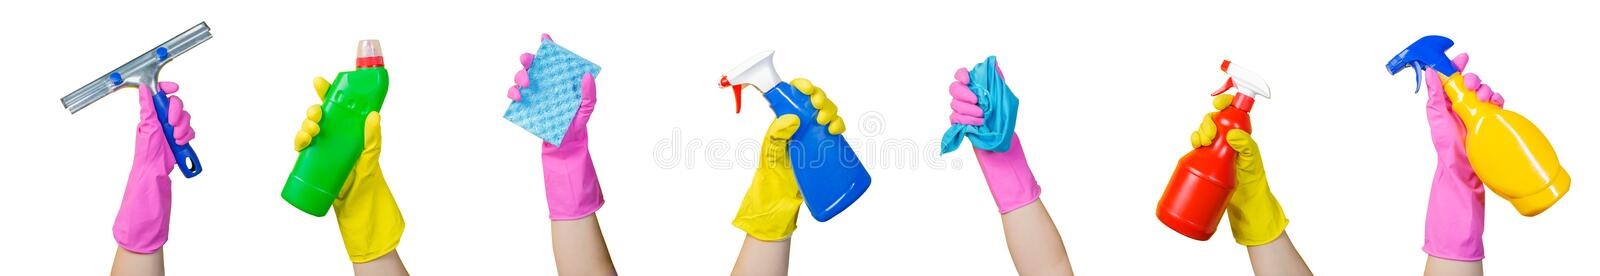 Cleaning concept - hands holding supplies, isolated stock image